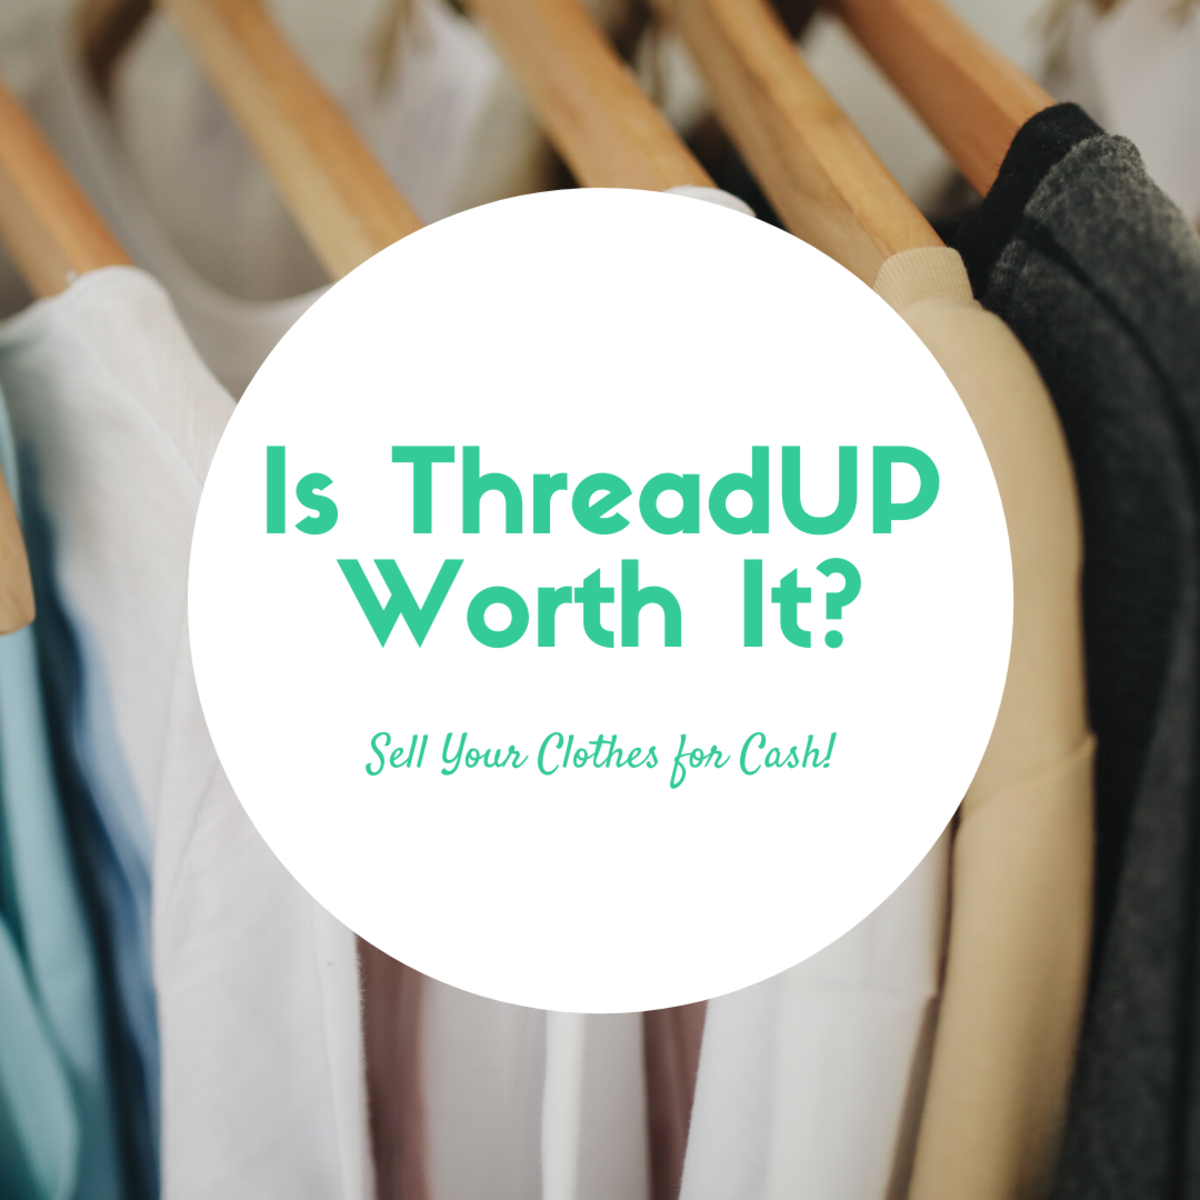 Is threadUP a good place to sell your used clothes? Read on to find out!